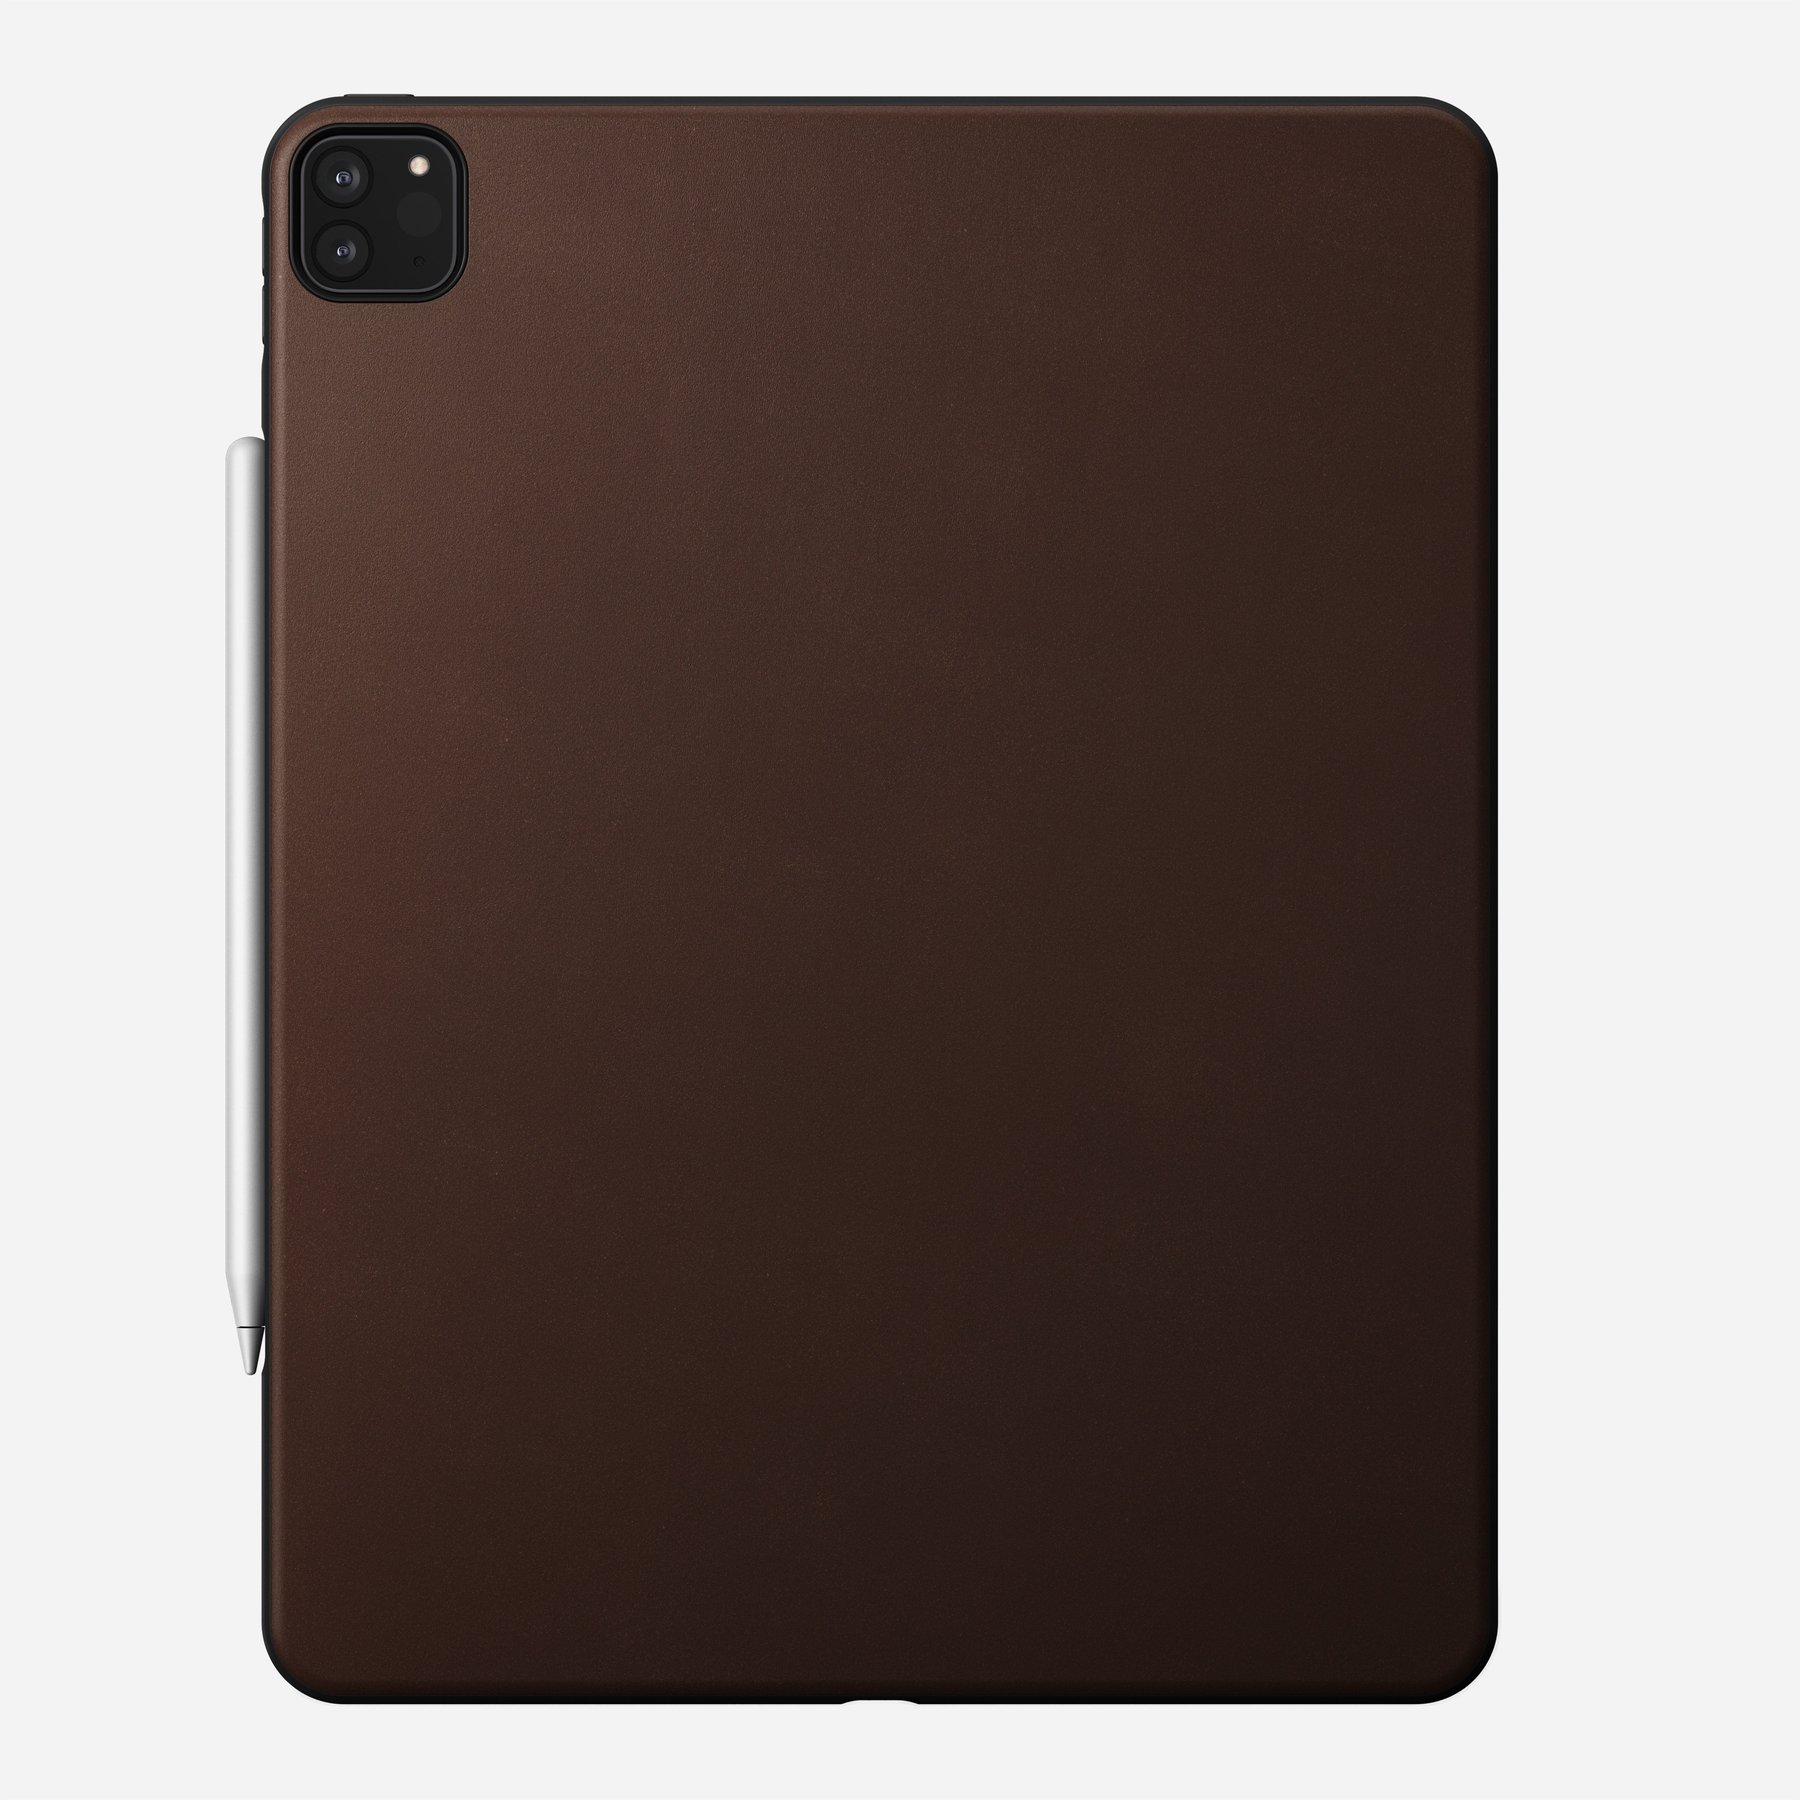 """Nomad Rugged Leather Case für iPad Pro 11"""" Rustic Brown"""